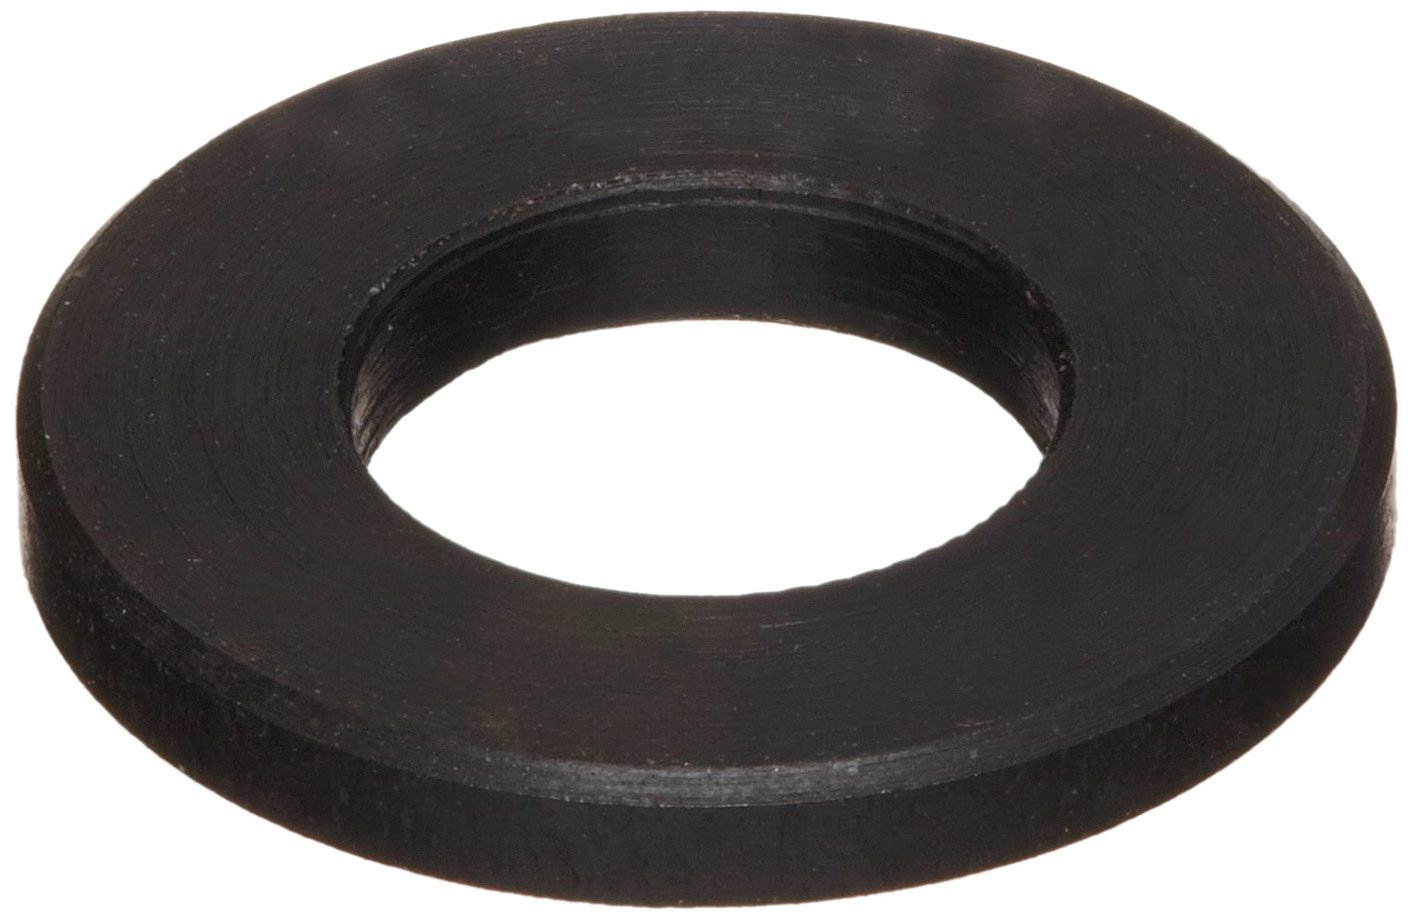 0.187 Nominal Thickness #10 Hole Size 1 OD Made in US 0.505 ID 1 OD 0.187 Nominal Thickness Accurate Manufacturing Z0356 Black Oxide Finish 4140 Steel Flat Washer 0.505 ID